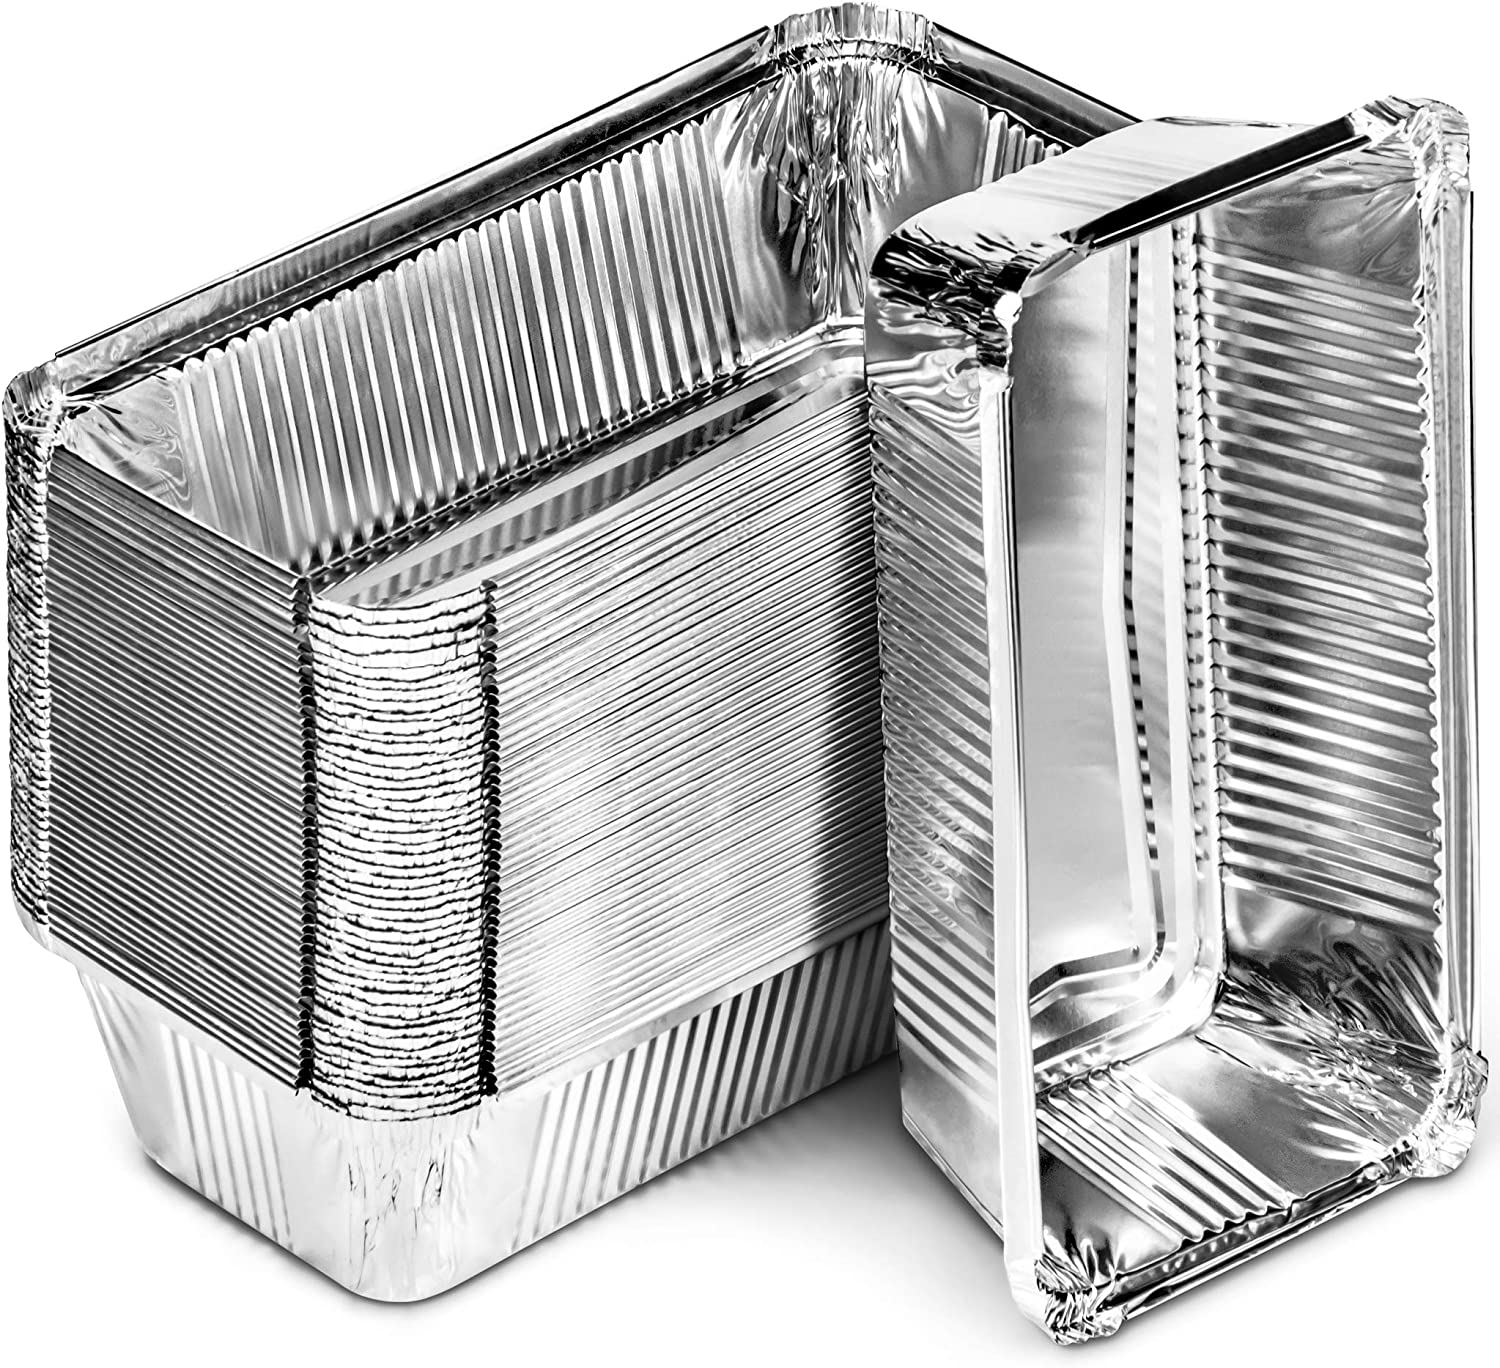 DecorRack 50 Bread Loaf Pans 8.5 x 4.5 Inch Aluminum Foil Pans Food Storage Container, For Cooking, Baking, Storing, Meal Prep Homemade Bread Pans (50 Pack)